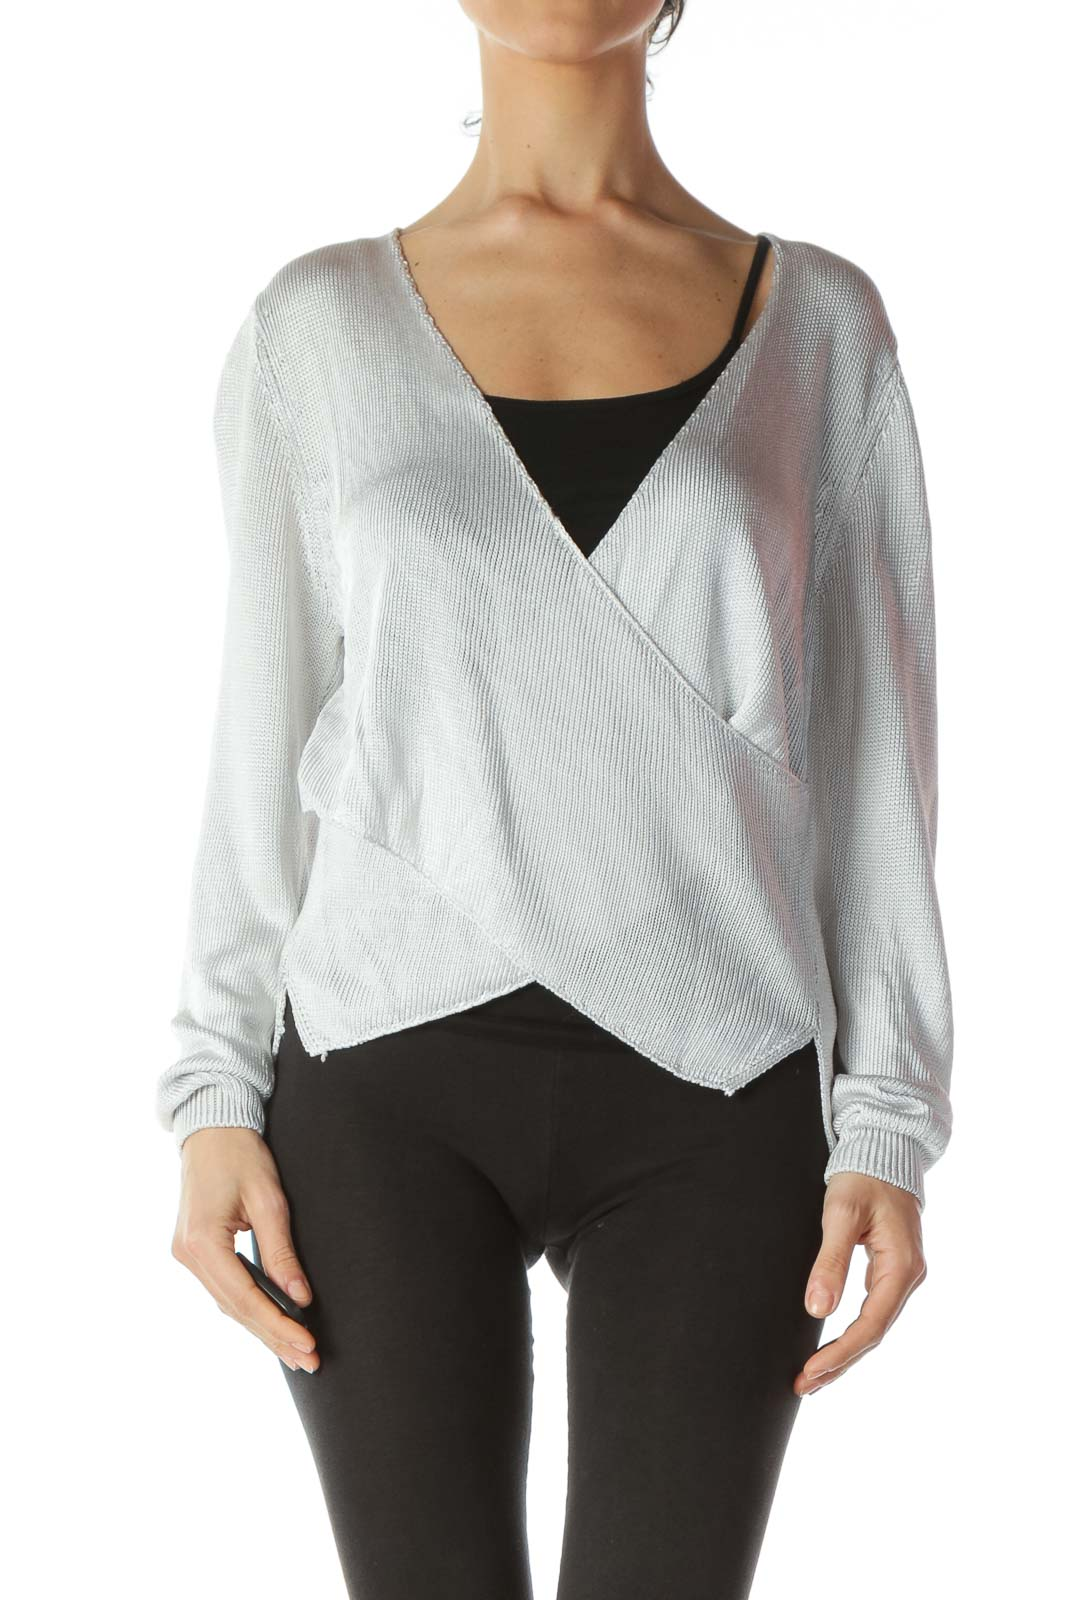 Silver V-Neck Wrap See-Through Knit Top